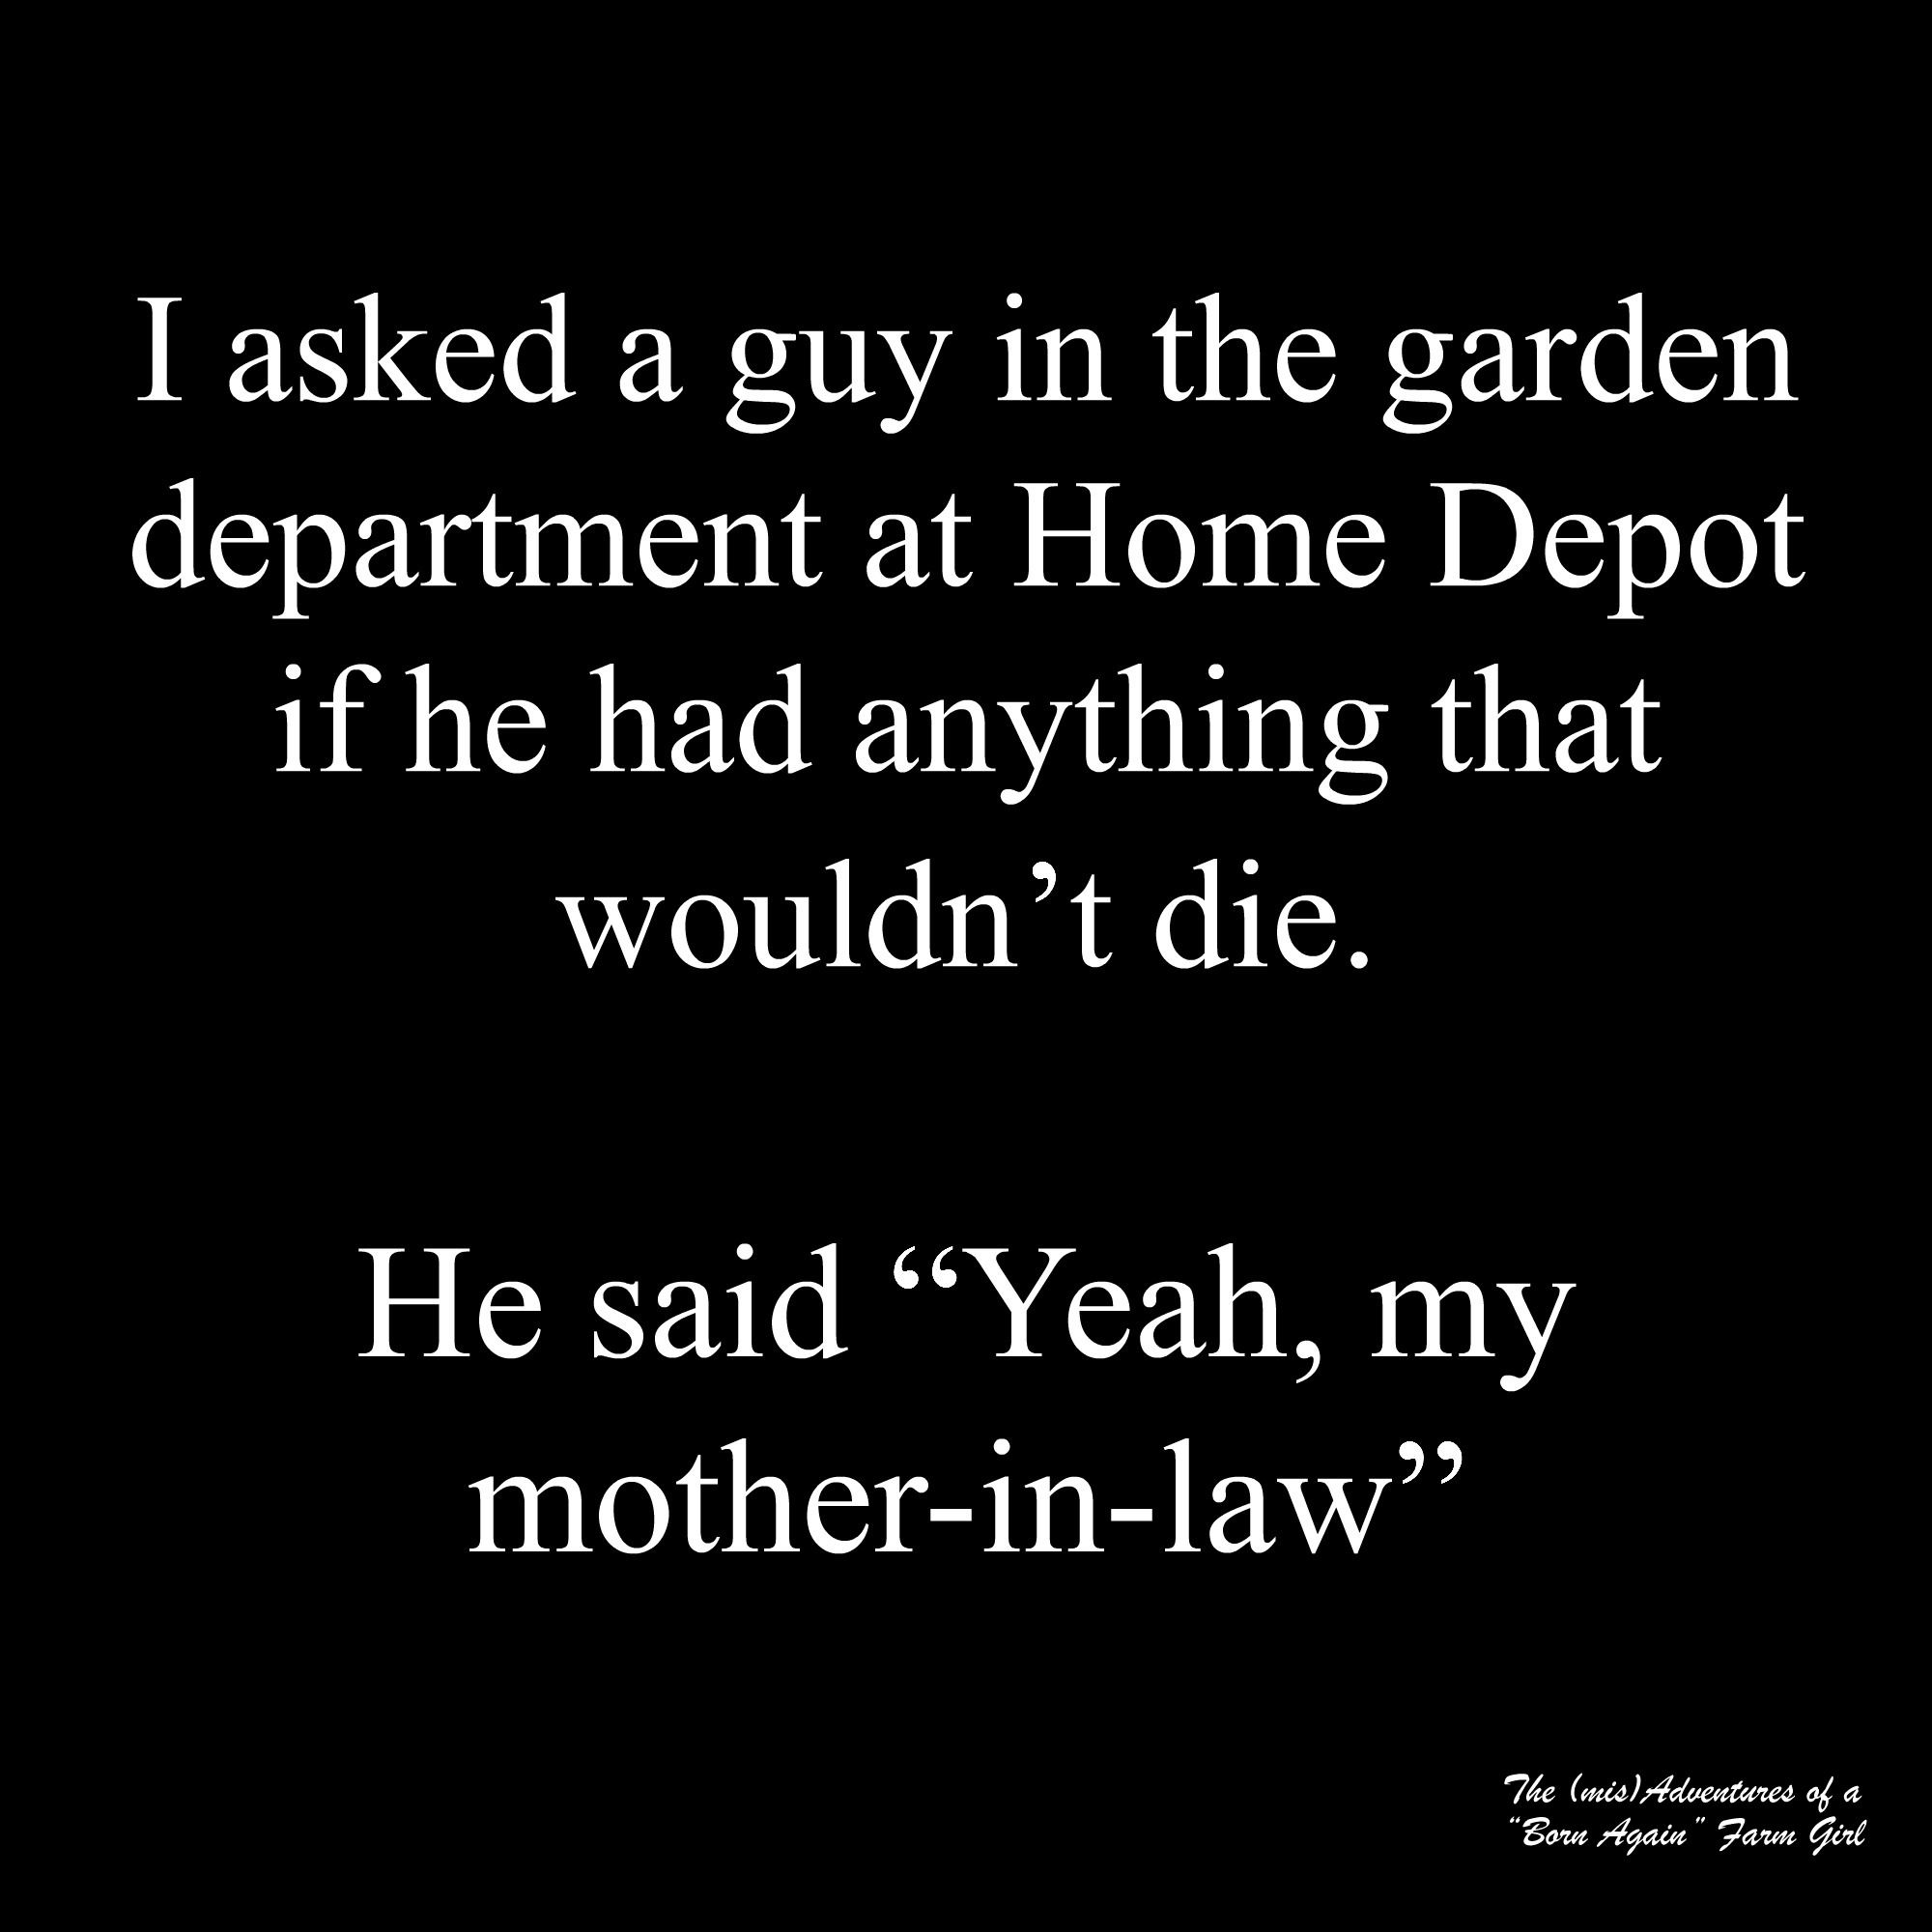 Mother in law jokes are funny Funny quotes, Narcissistic